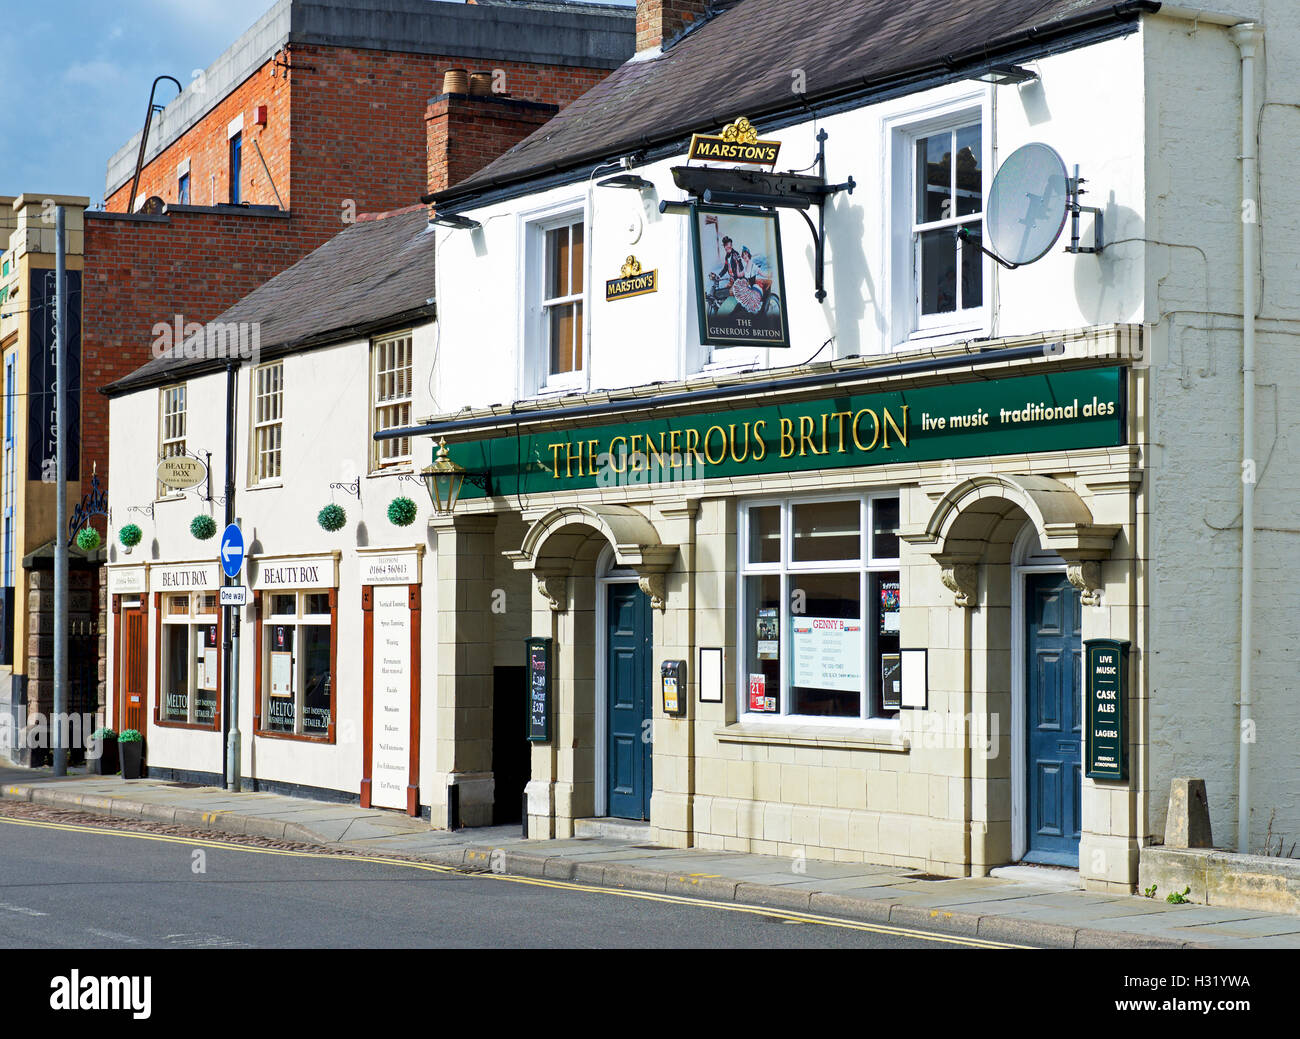 The Generous Briton pub, Melton Mowbray, Leicestershire, England UK Stock Photo